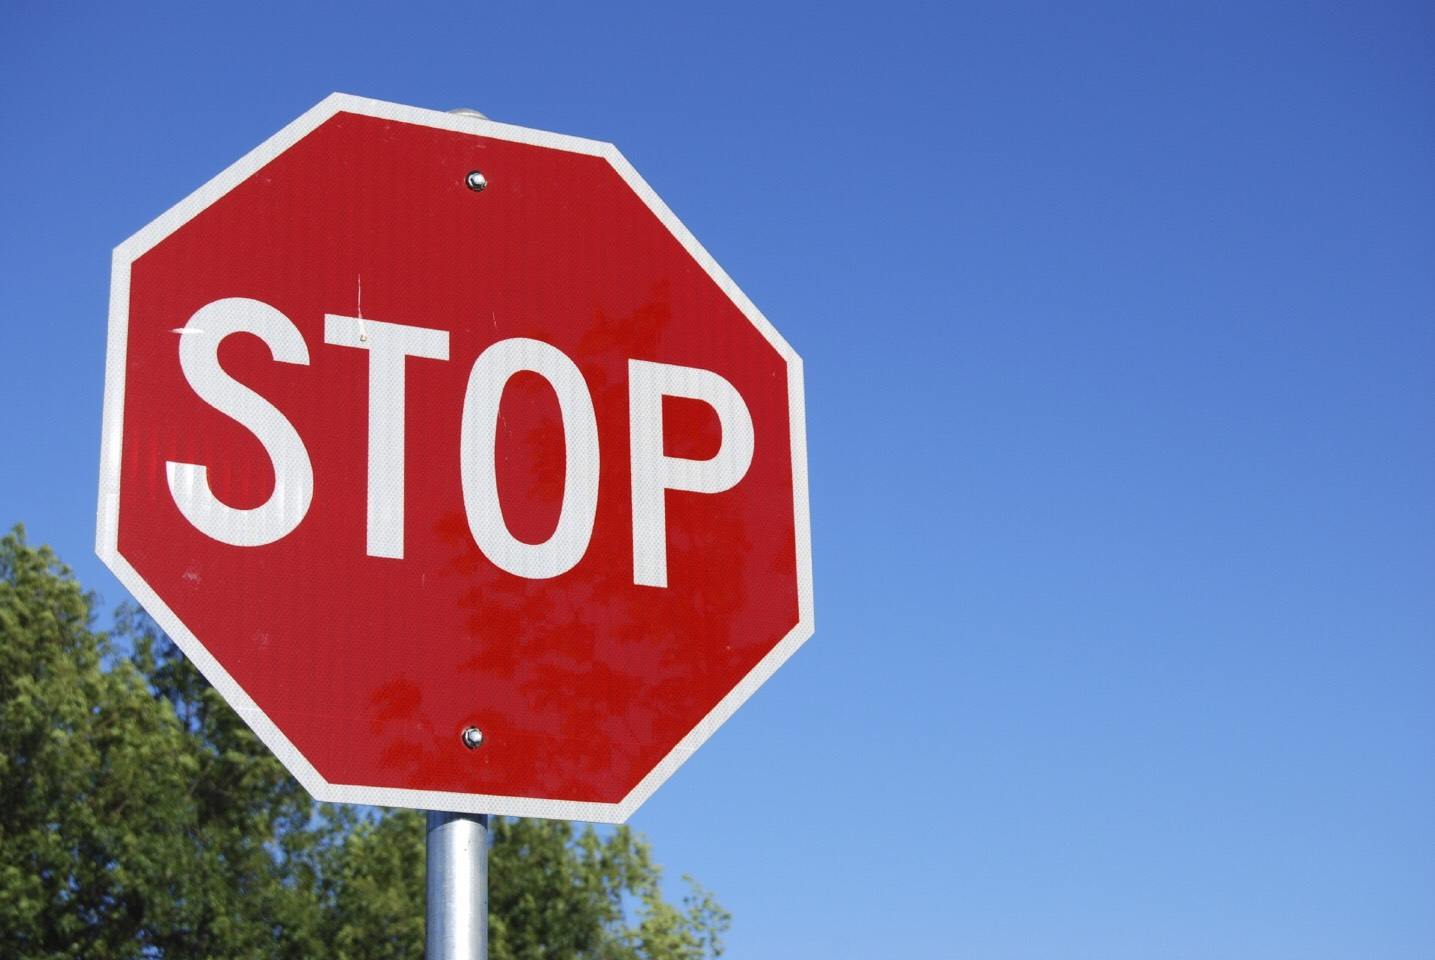 When ever u see a stop sign  FLEX YOUR ABBS